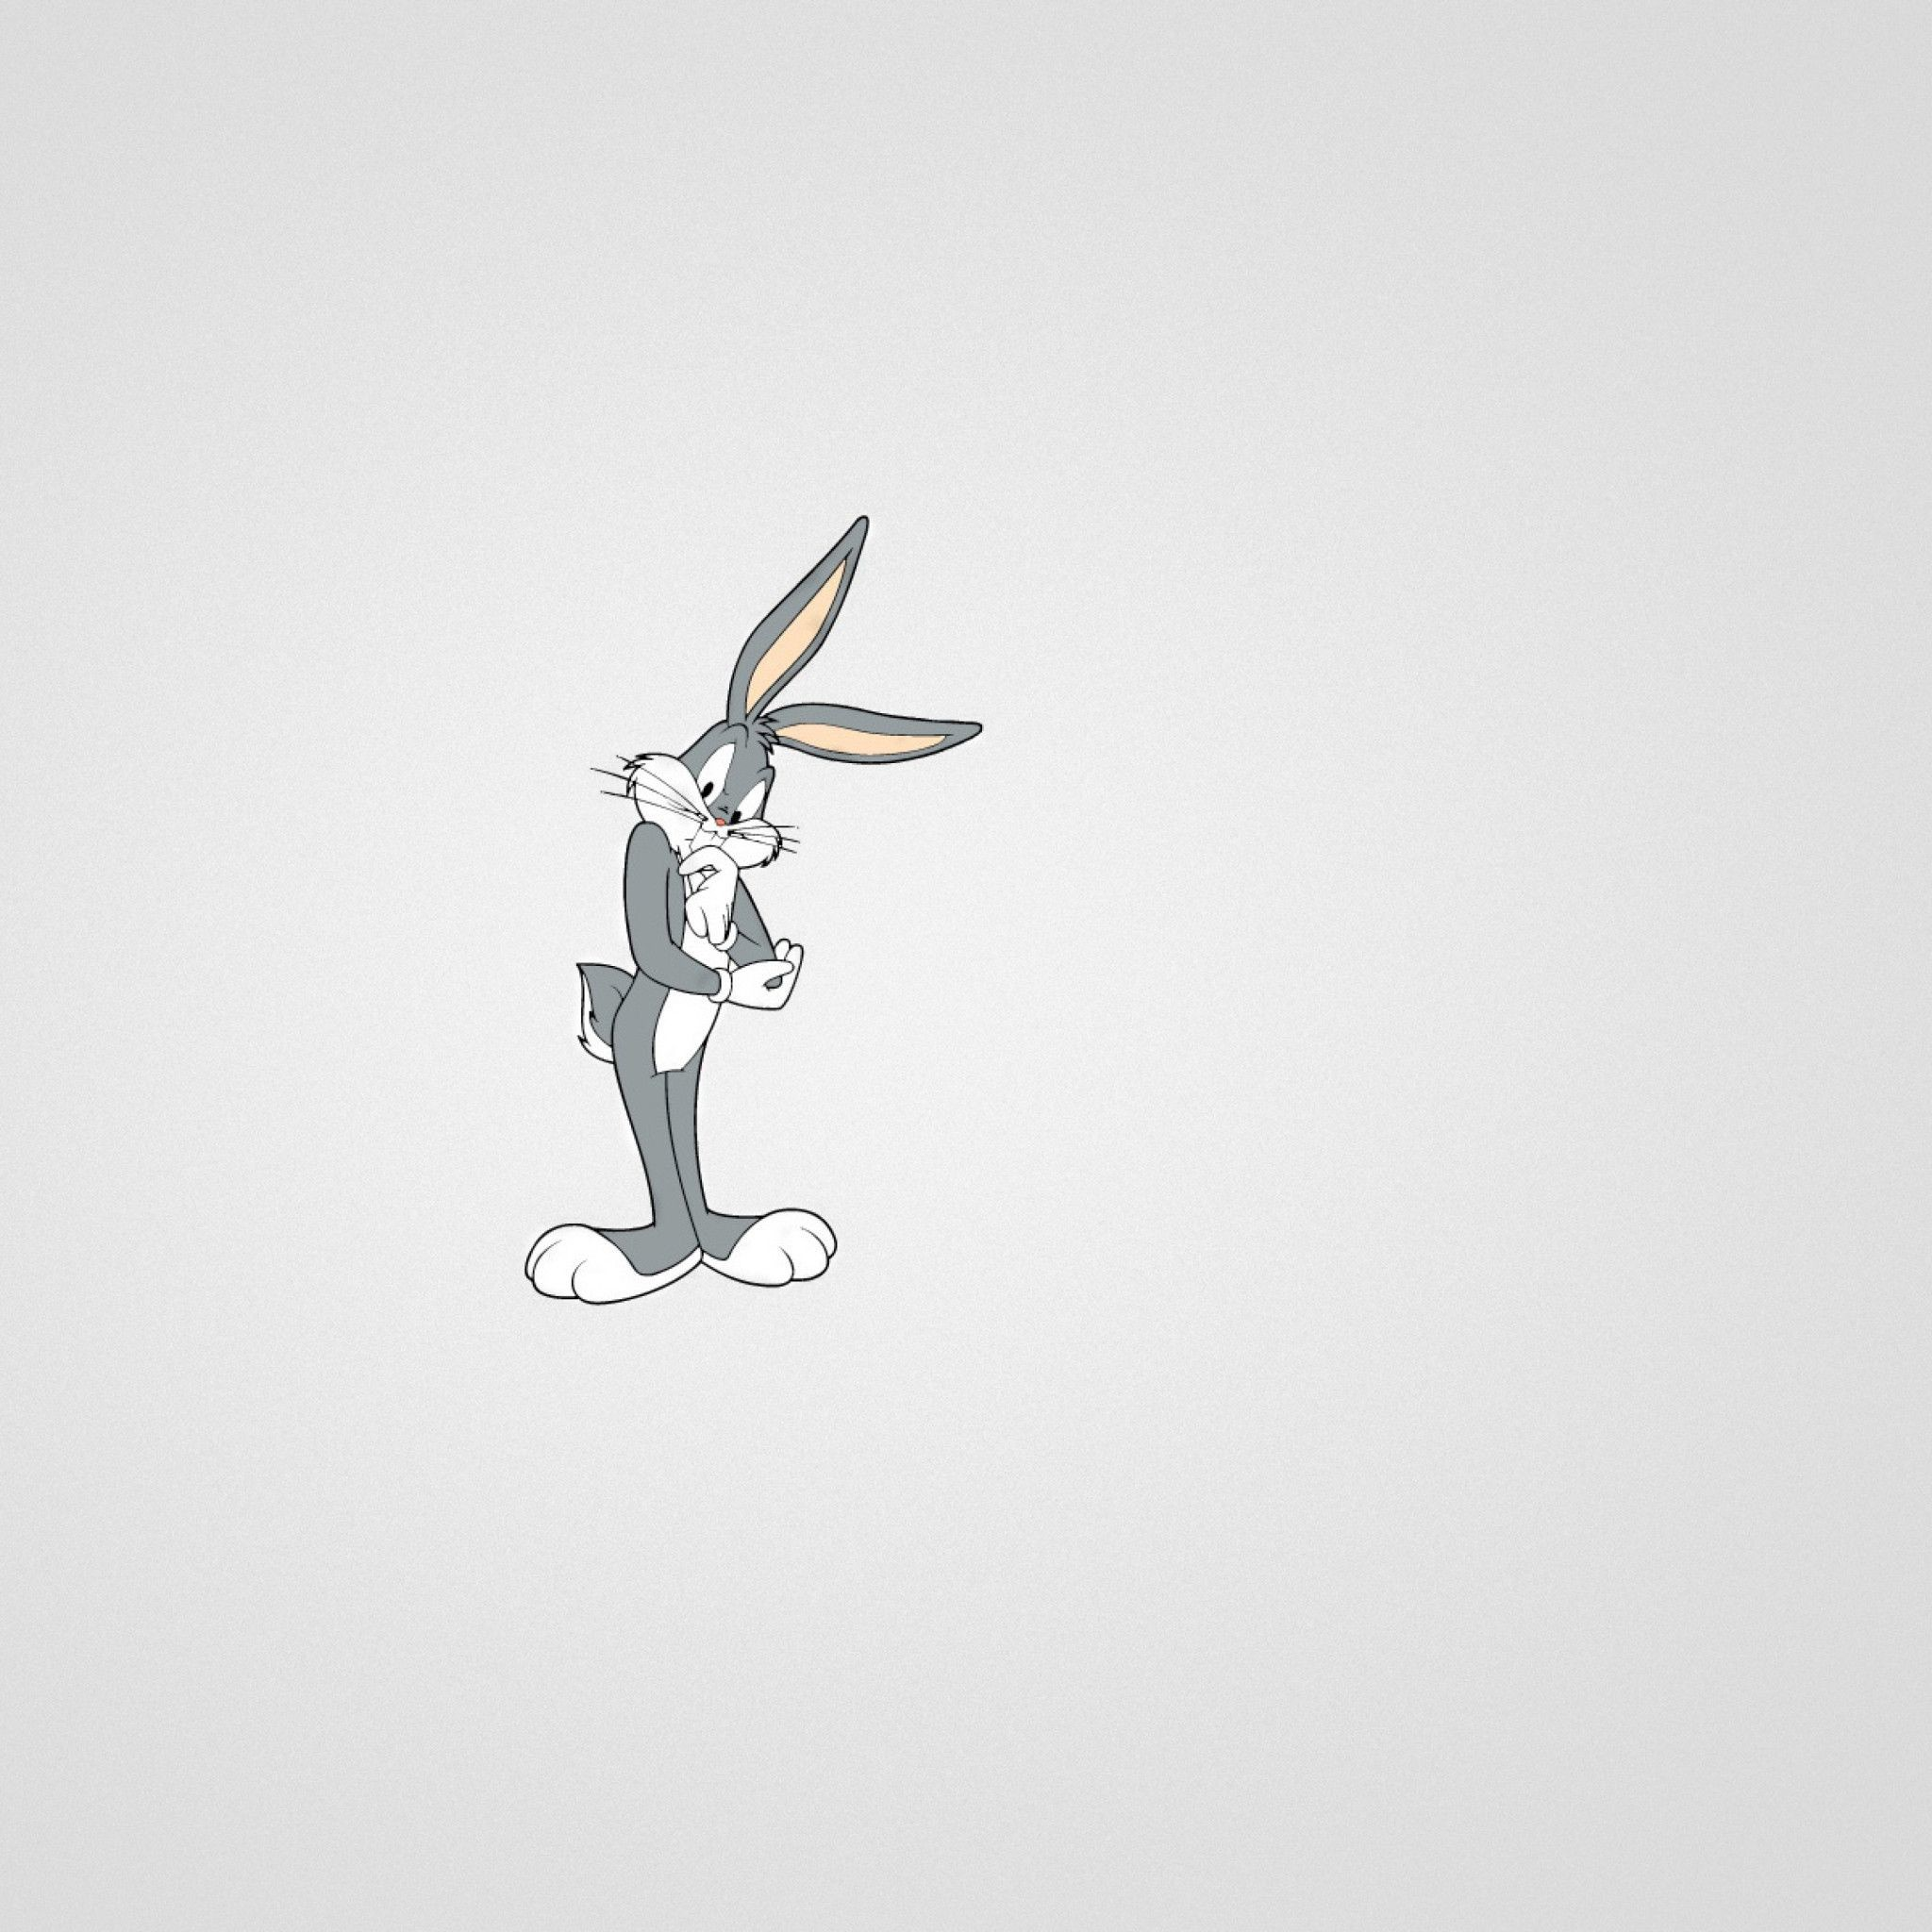 Bugs Bunny Wallpaper For Computer (58+ Images